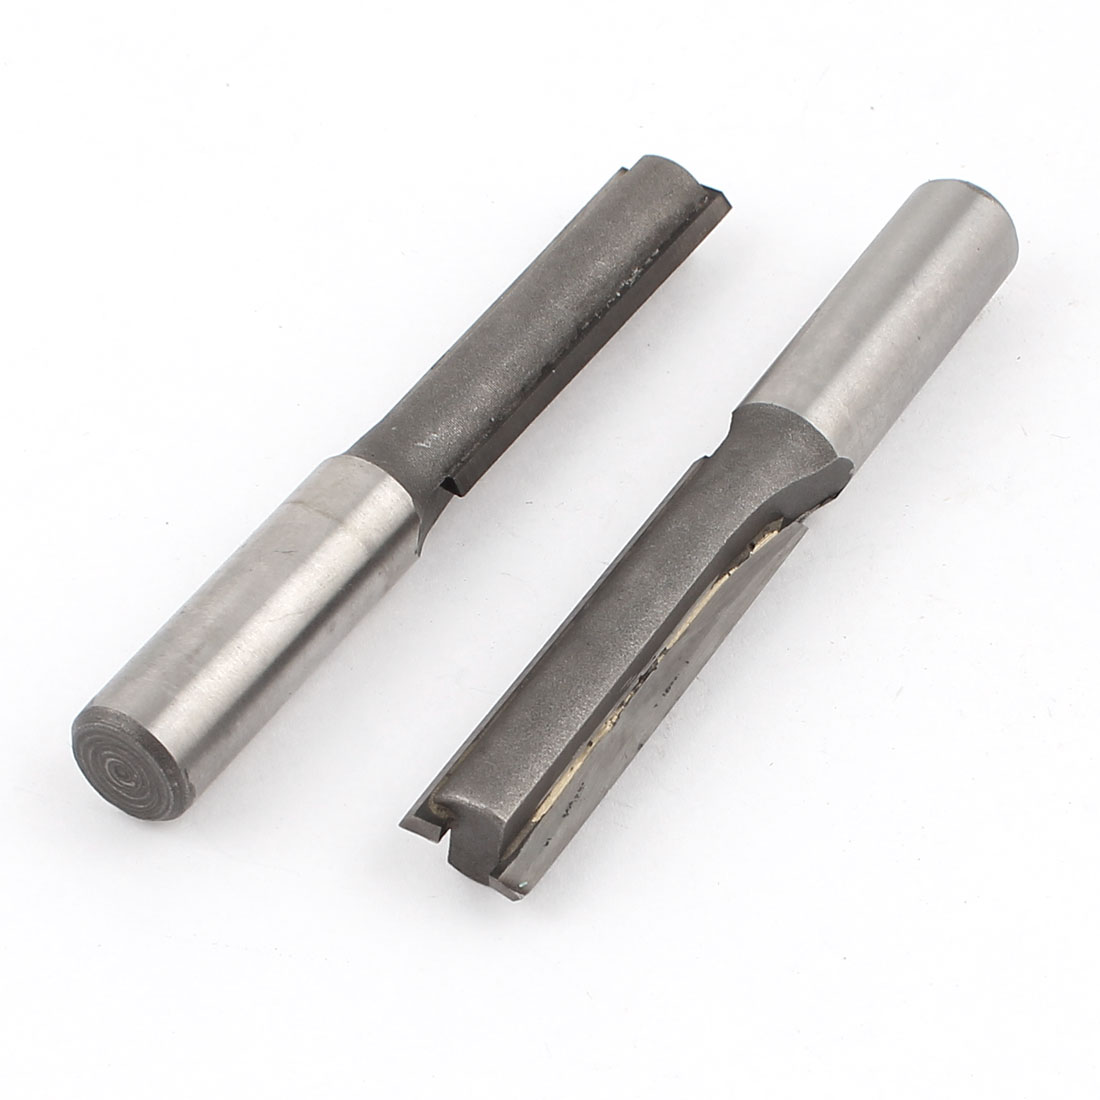 "2 Pcs Long Depth Two Flute Straight Router Bit 1/2""x 1/2"" x 2"" Gray"